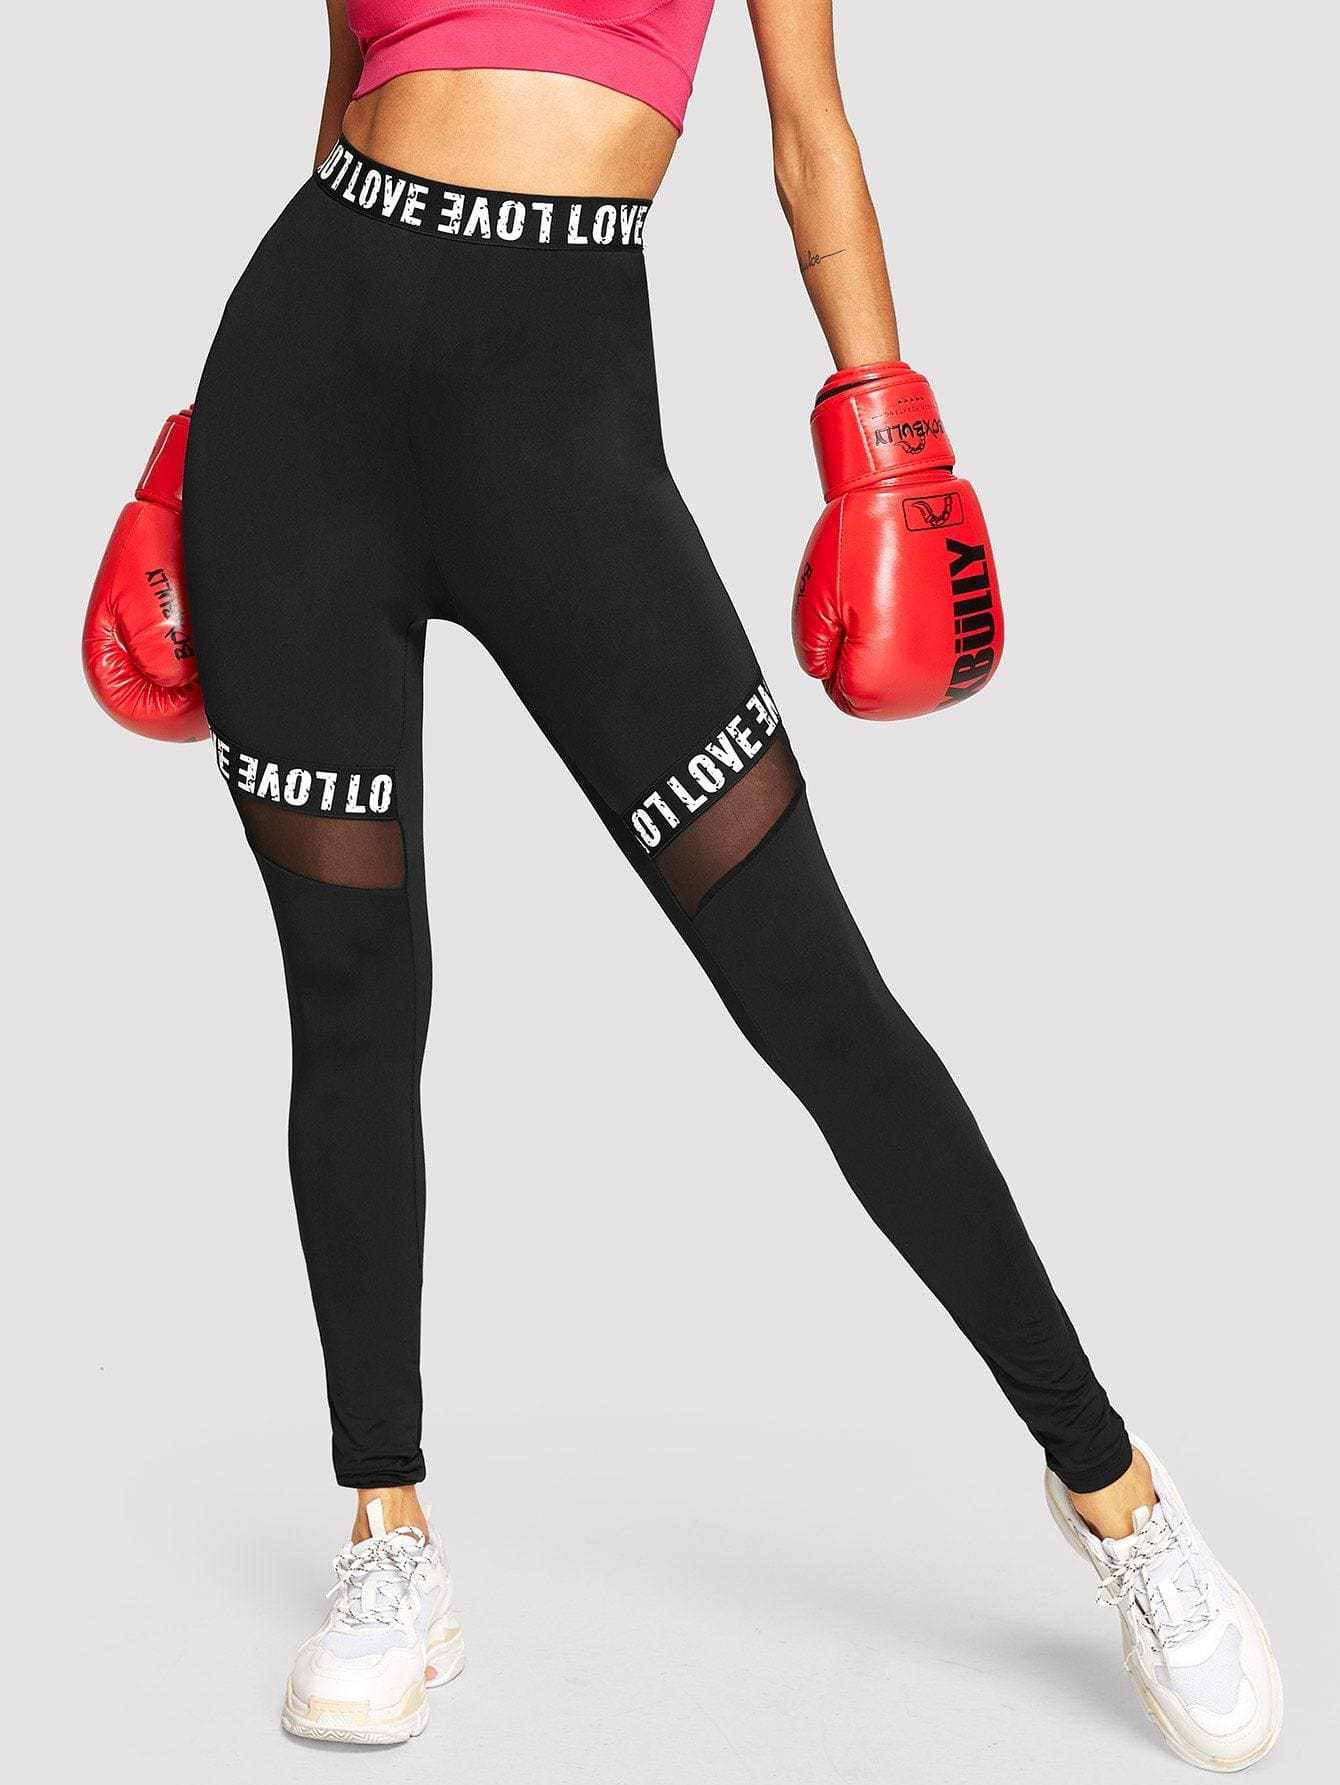 Mesh Insert Letter Print Leggings - S - Fittness Leggings